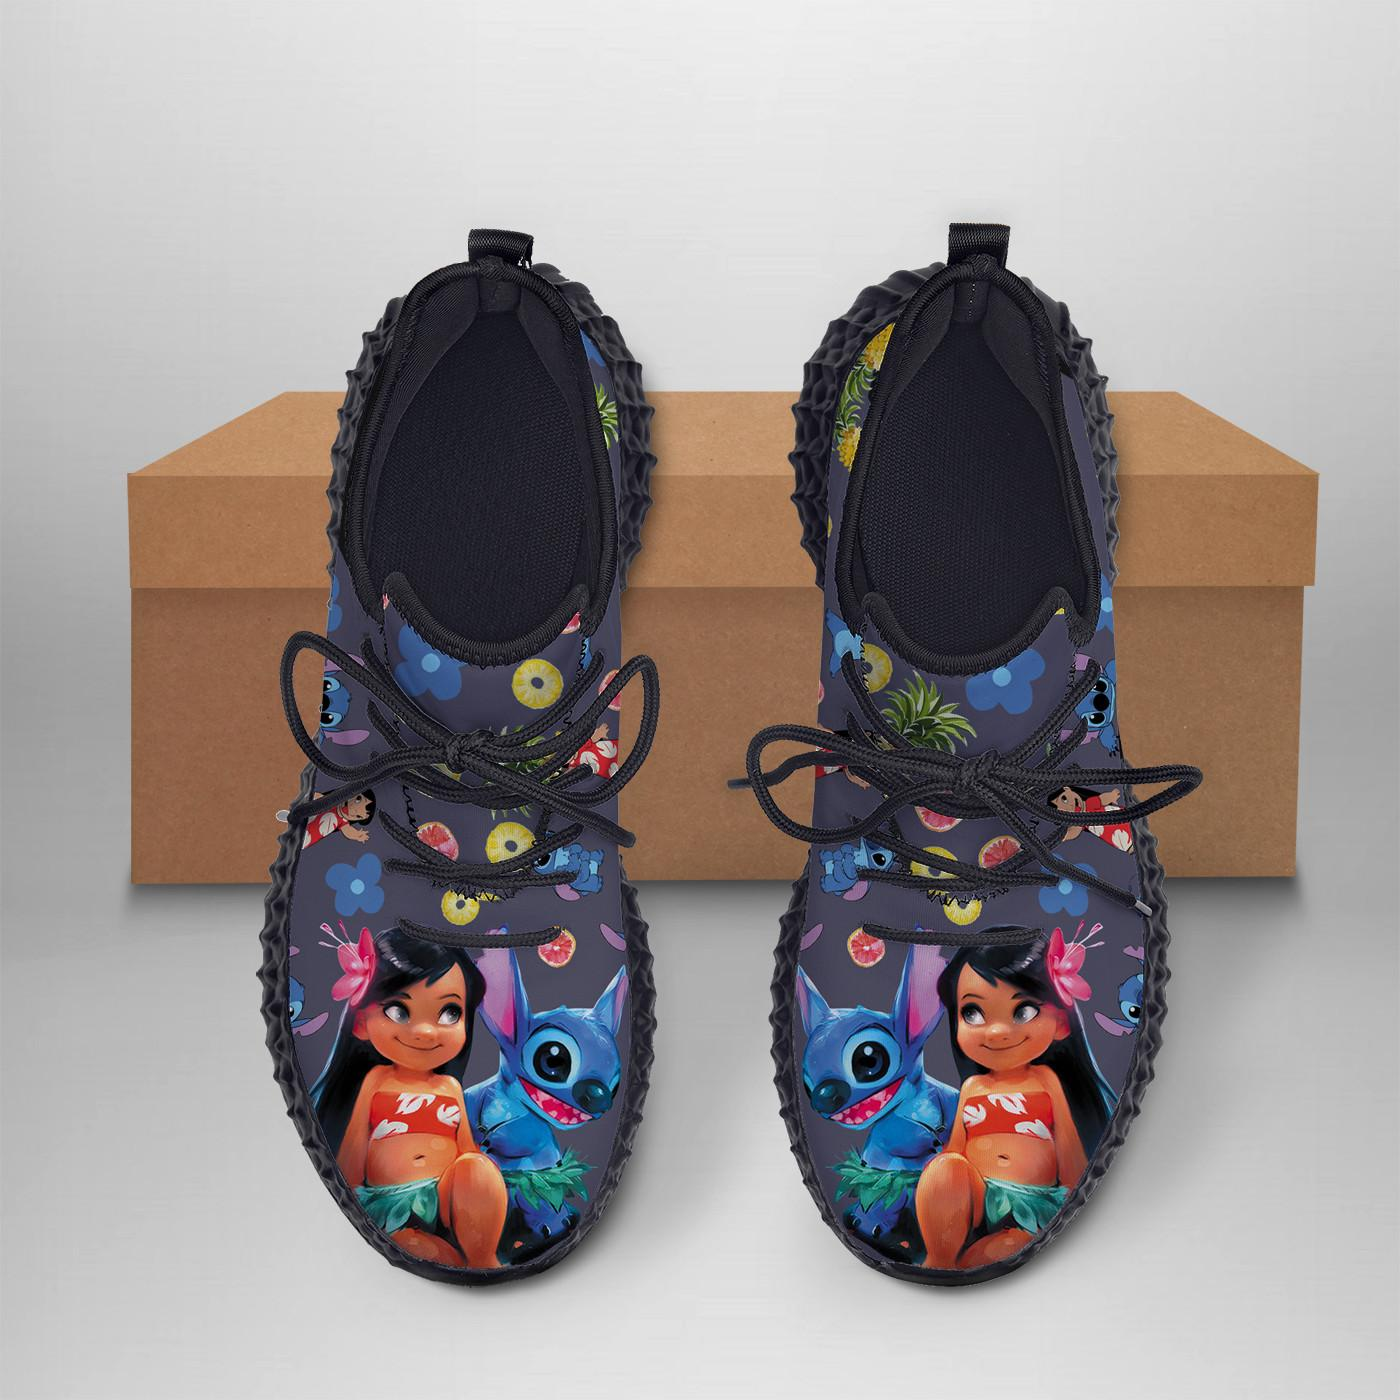 LILO & STITCH  Yeezy Sneakers Shoes For Men, Women, Runing Yeezy Sneakers Shoes. Custom Yeezy Sneakers Shoes SNEAKERS